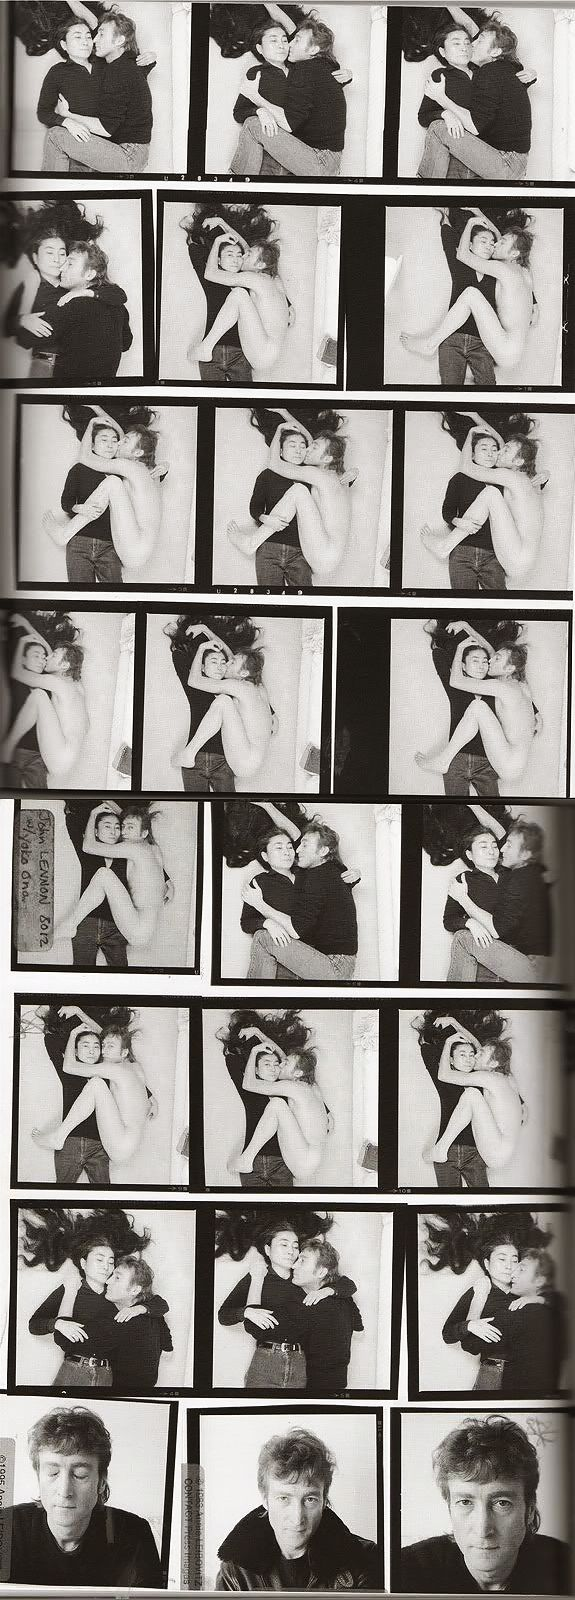 Contact sheet for John Lennon and Yoko Ono's photo-shoot, photographed by Annie Leibovitz. 5 hours later Lennon was shot. December 8th 1980